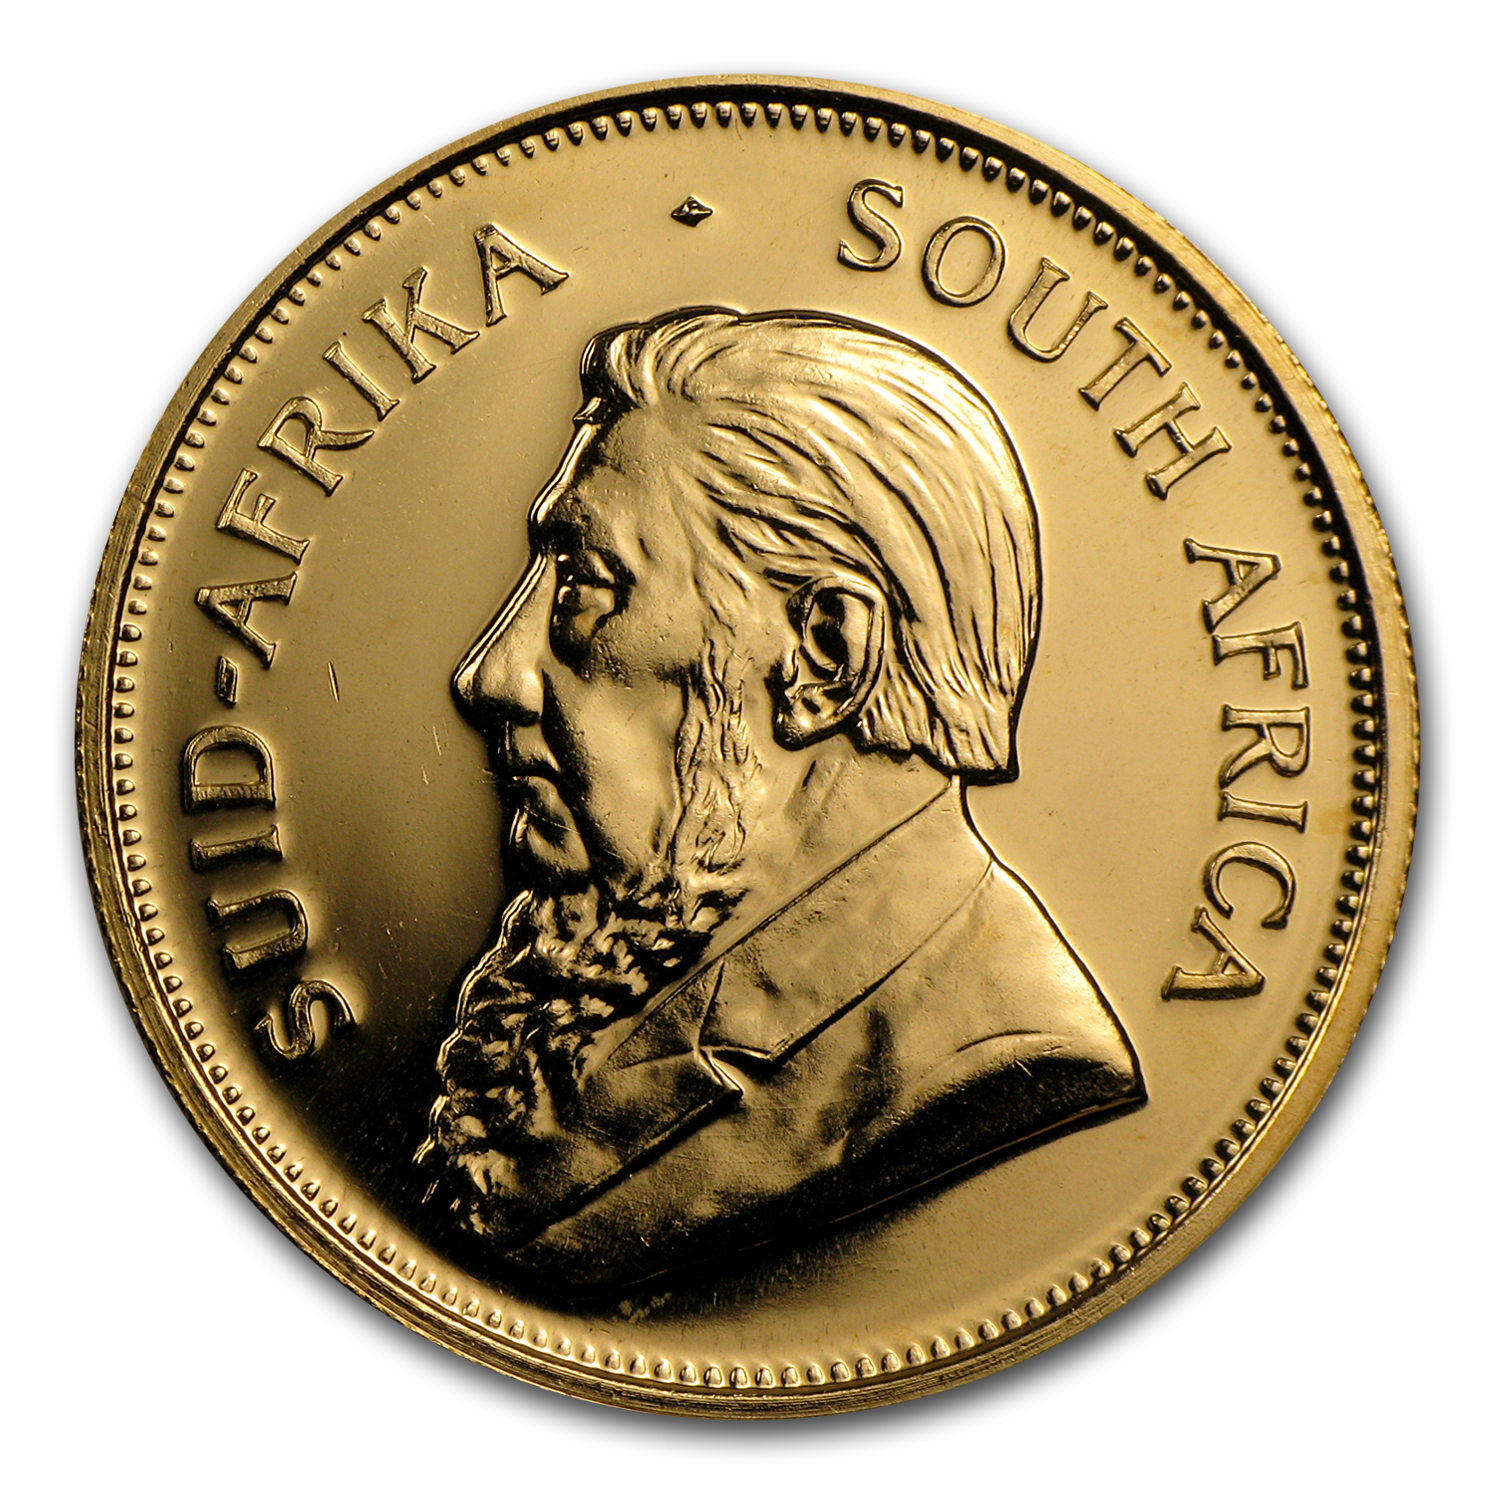 1969 South Africa 1 oz Gold Krugerrand